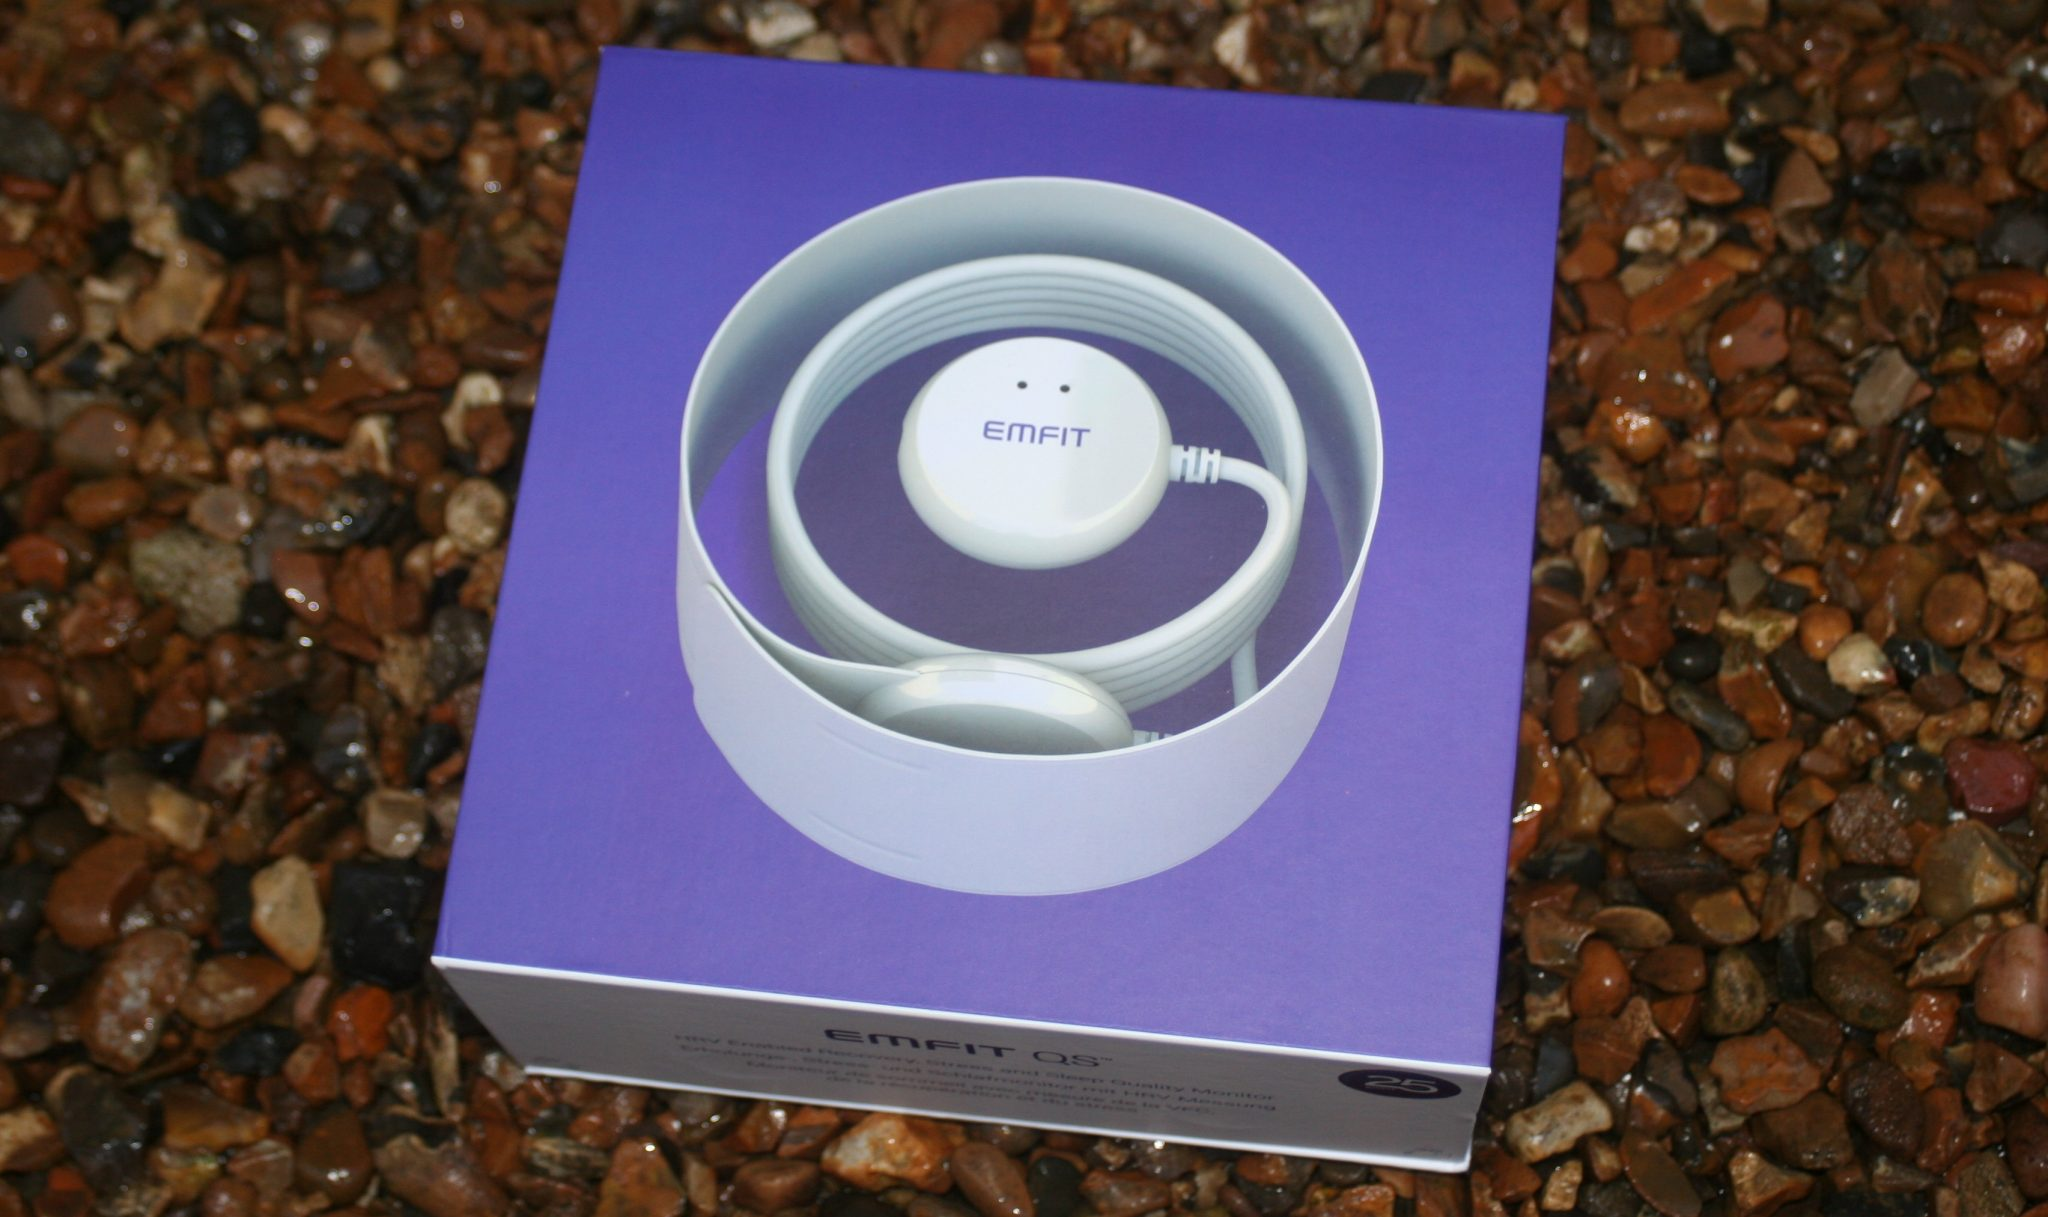 EMFIT review QS - HRV Enabled Recovery, Stress & Sleep Quality Monitor